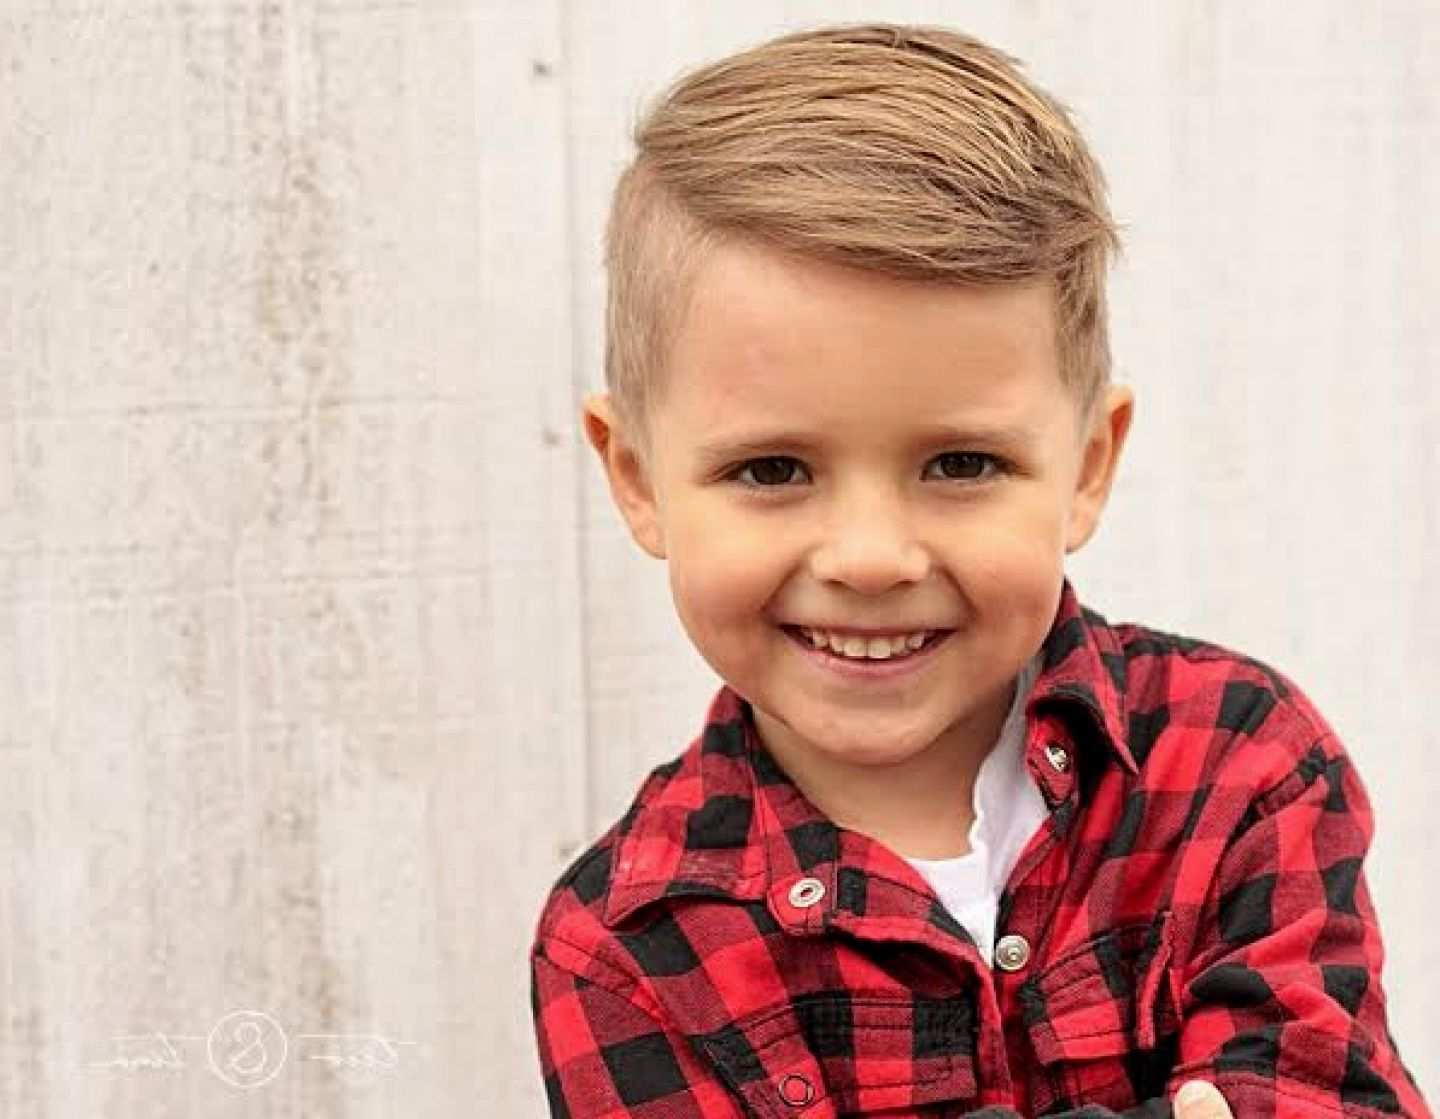 Boy Haircuts Short Archives Trendy Hairstyle Collection Boys Haircuts Boy Haircuts Short Young Boy Haircuts